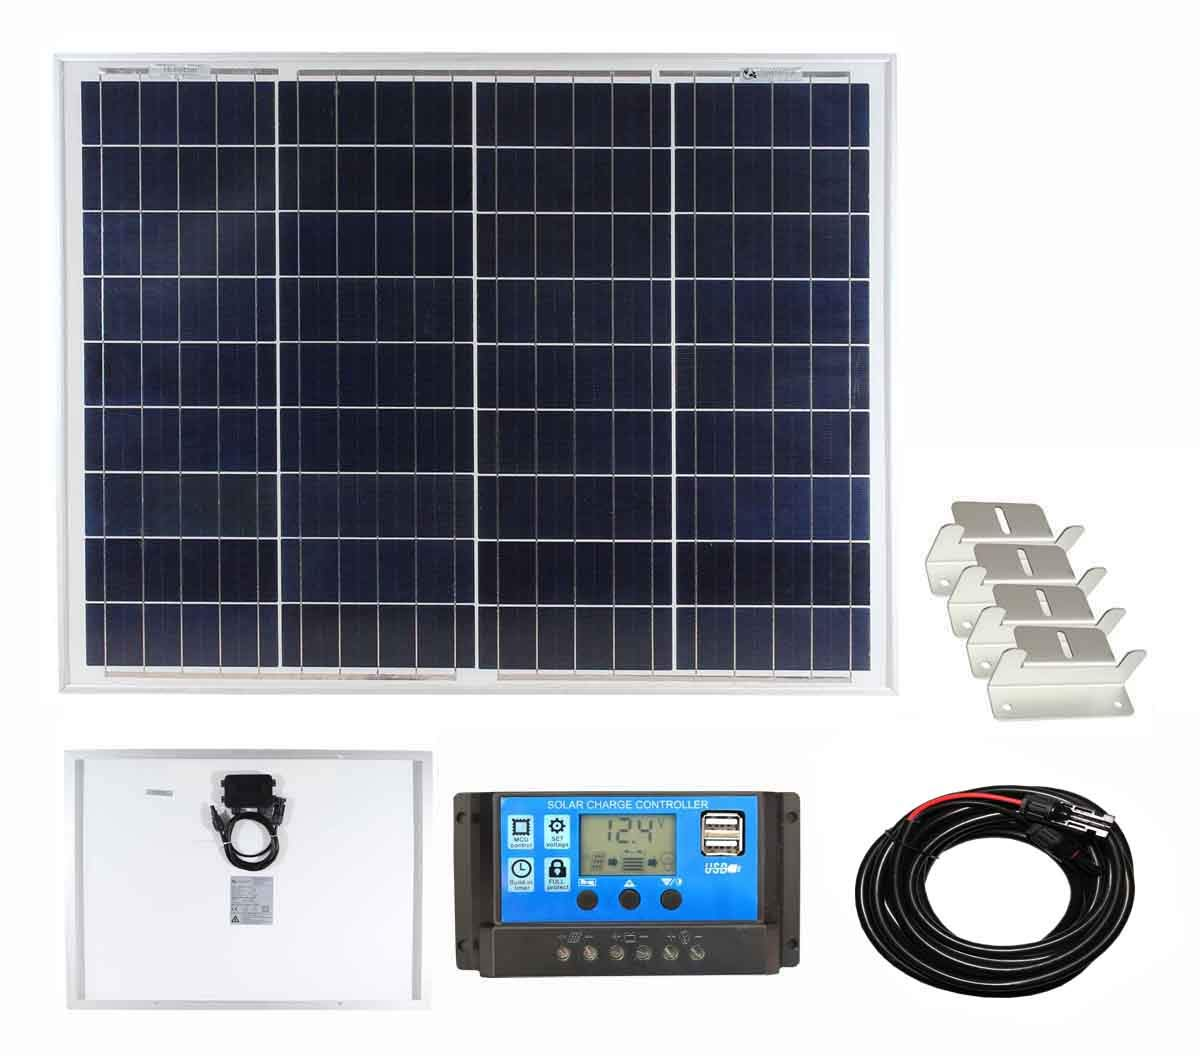 For Caravans Lowenergie 10W Poly-Crystalline Solar Panel Battery Charging Kit Charger Controller /& Mounting Bracket Set K2 Motorhomes Boats /& Any Flat Surface